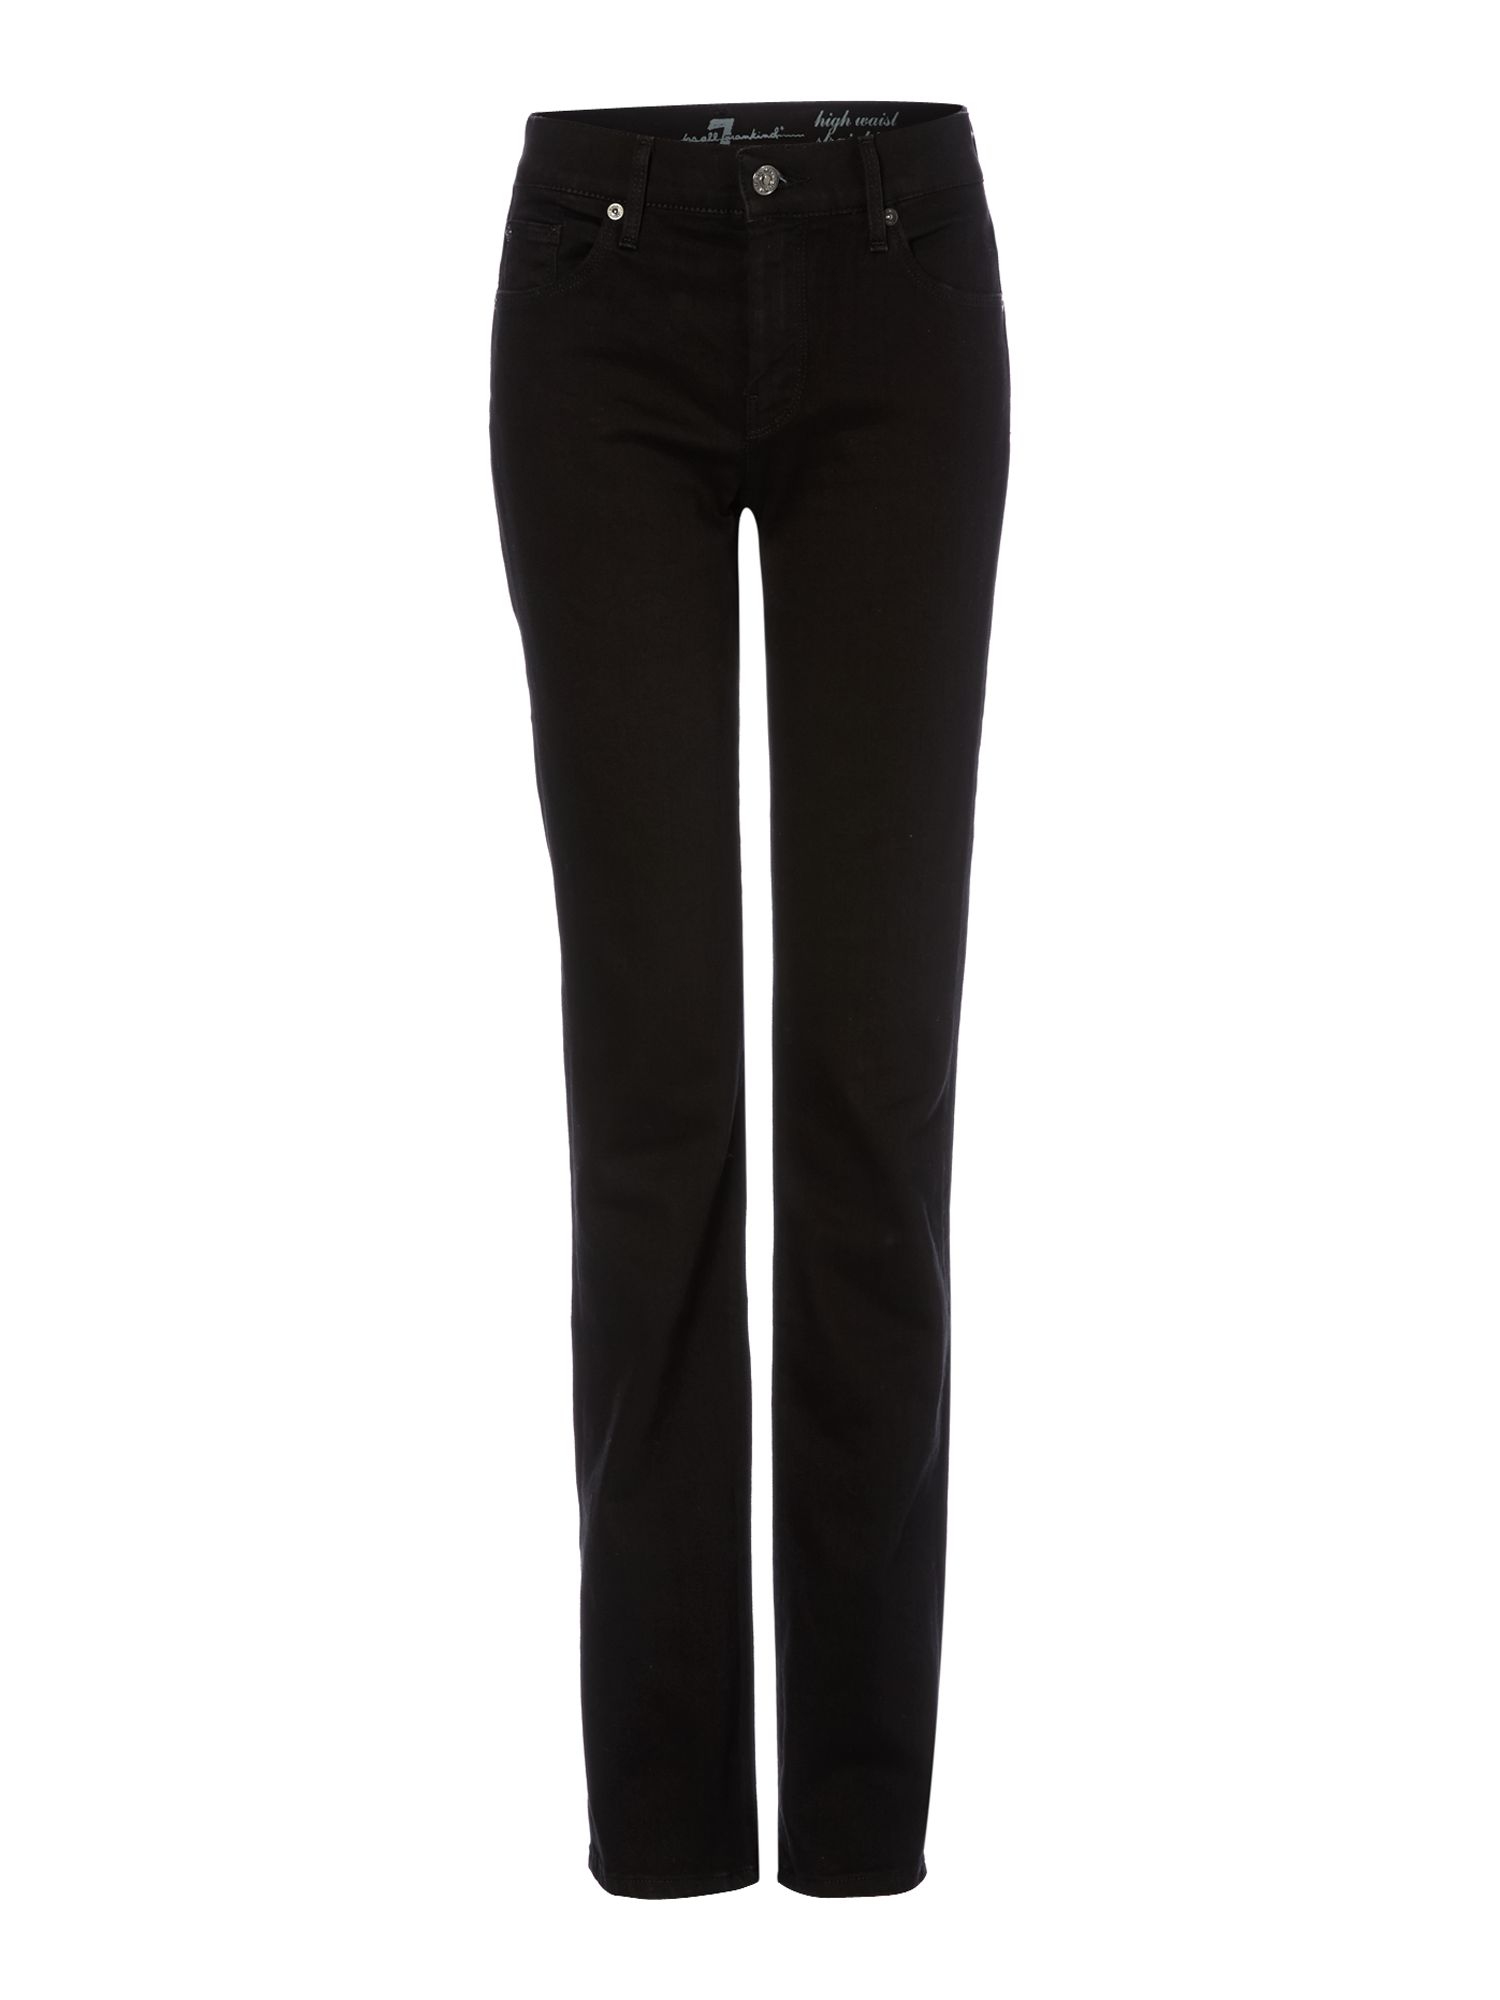 High waist straight leg jeans in Portland Black